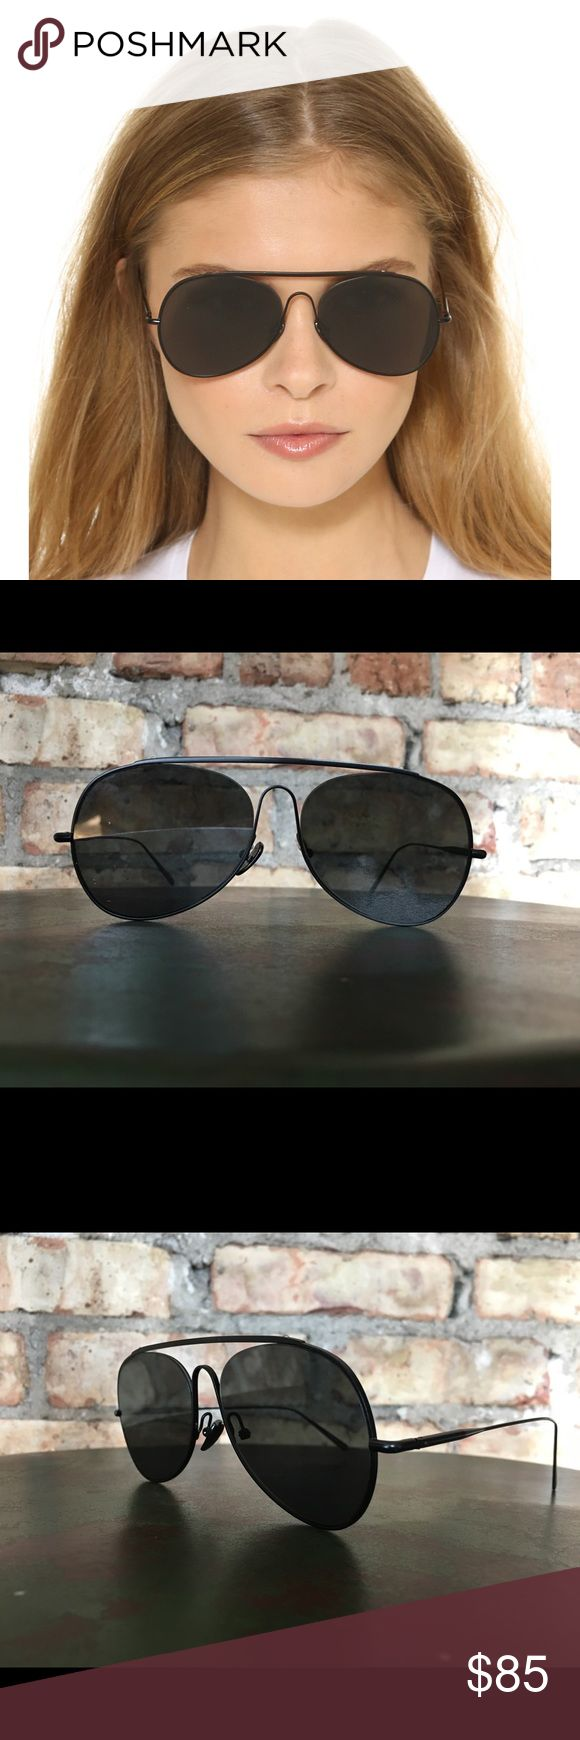 ACNE Studios Spitfire Sunglasses ACNE Studios Aviator Style Sunglasses   Black Metal Frames with Black Lenses   ACNE Logo engraved on temple   Made in France   Sleek Flat Front   Condition: Good   Minor Imperfections on Right Lense as shown in photo   Case included   Measurements: 57mm lens width   18mm bridge width   140mm temple length. Acne Accessories Sunglasses